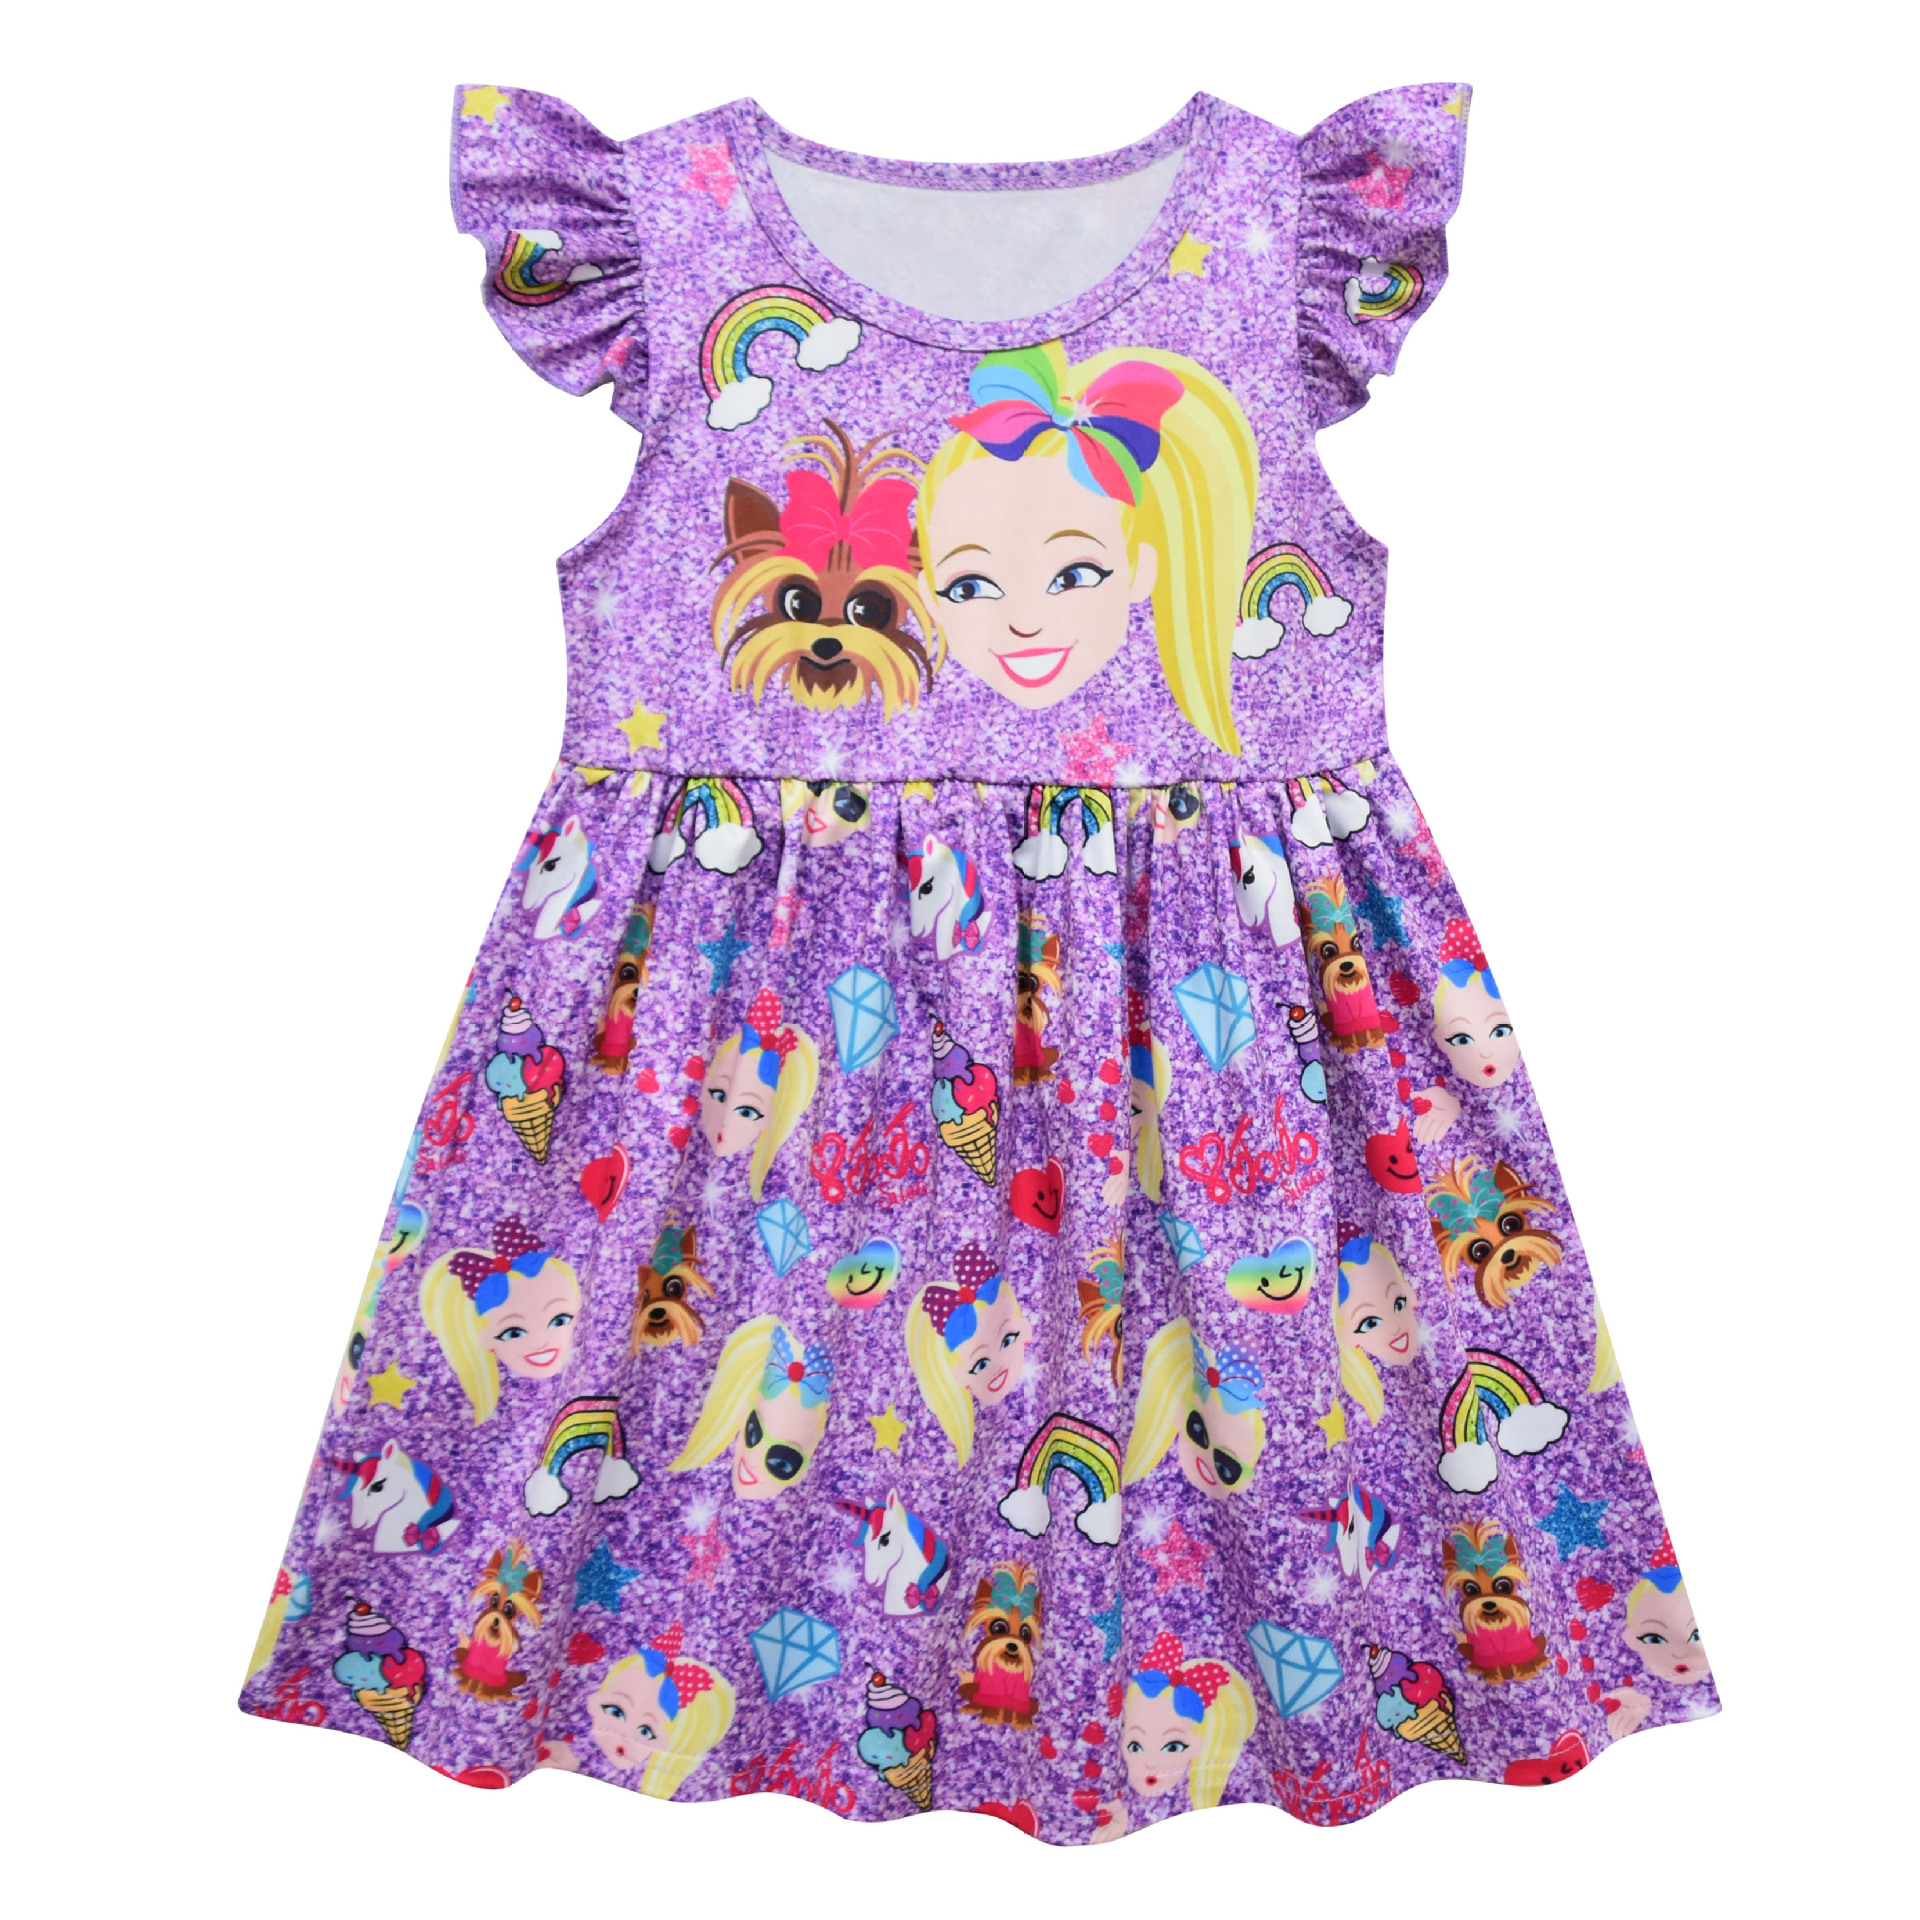 New Design Boutique Remake Dress Fashion Flutter Sleeve Girl Summer Purple Print Children Clothing